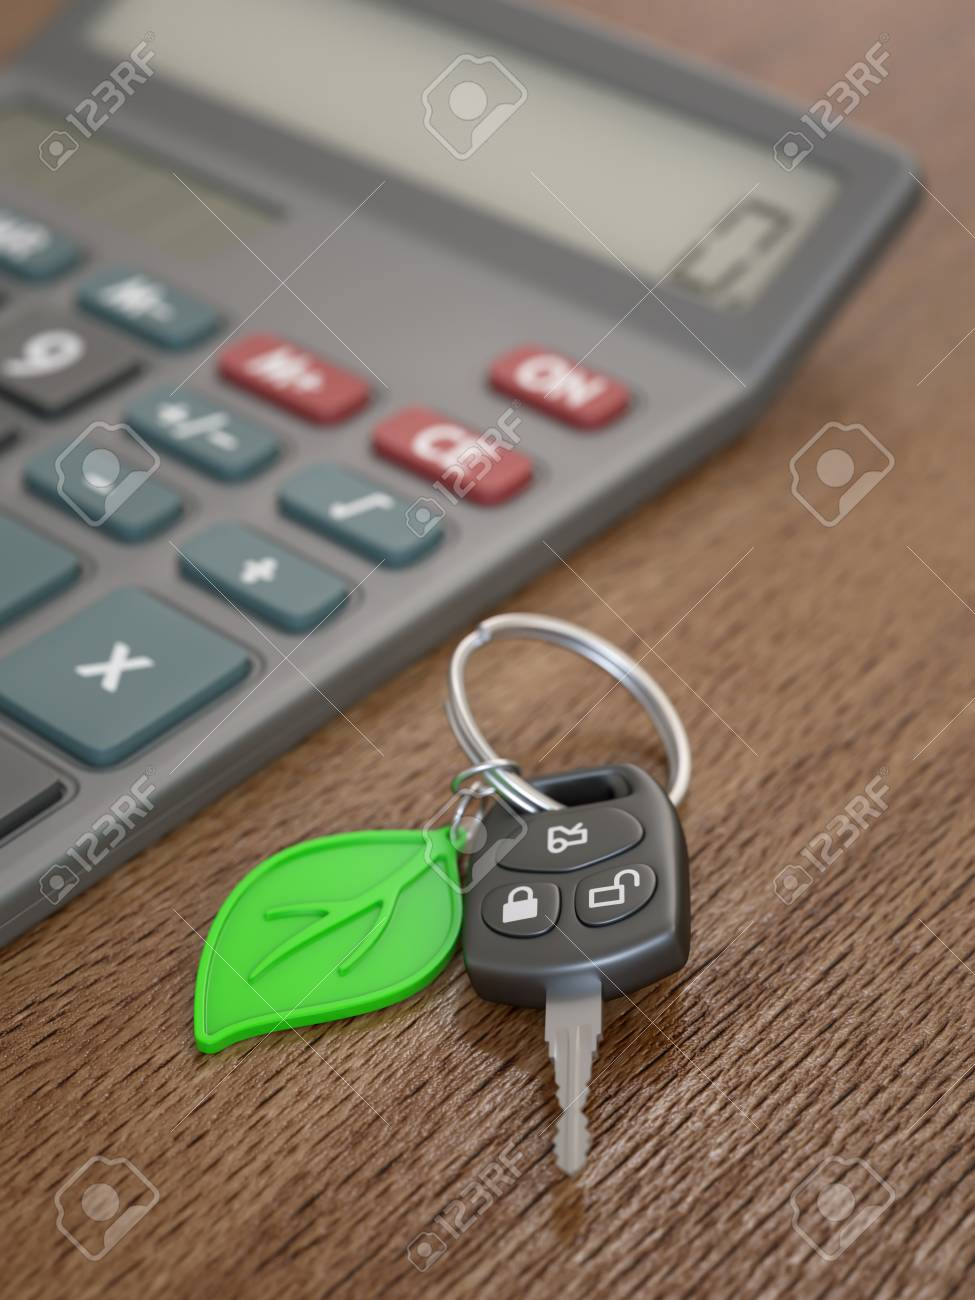 hybrid or electric car expenses calculation concept stock photo